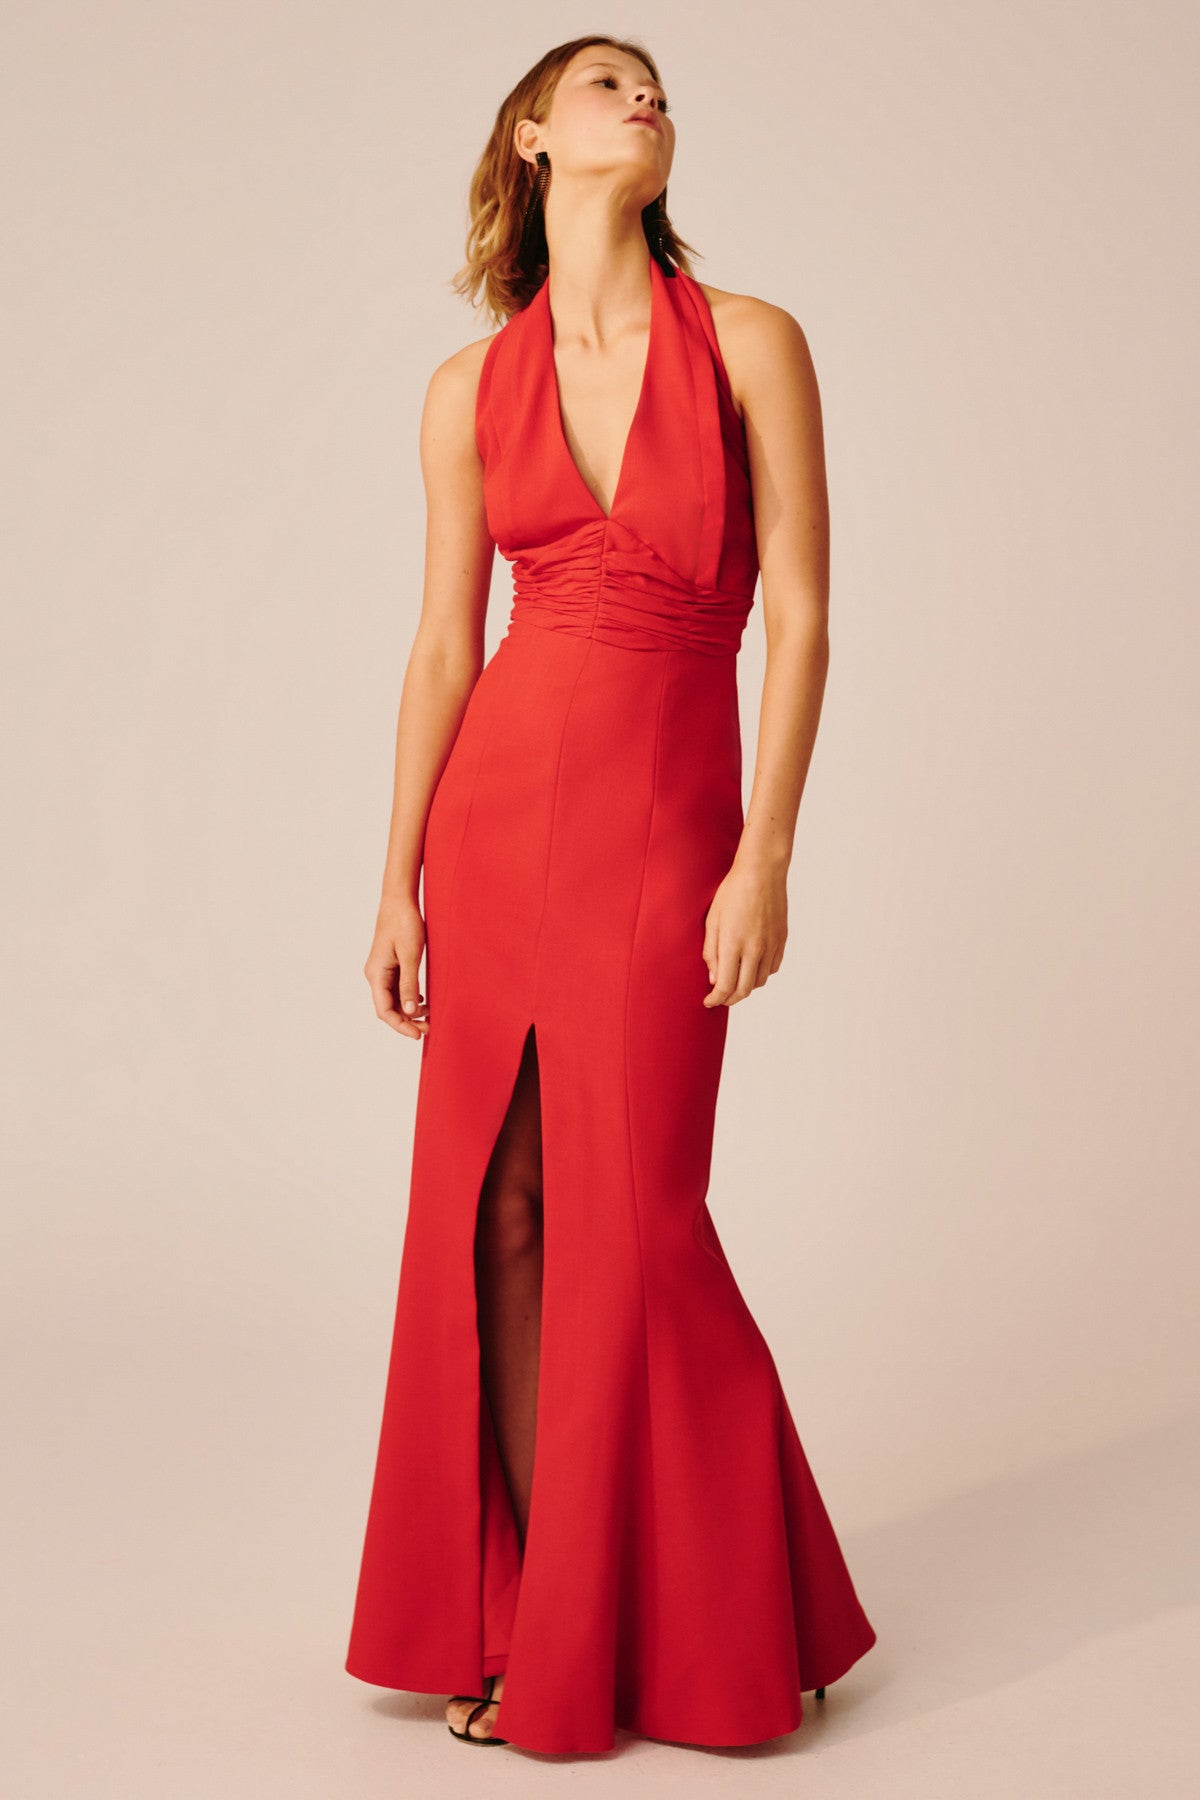 CONSONANT GOWN red